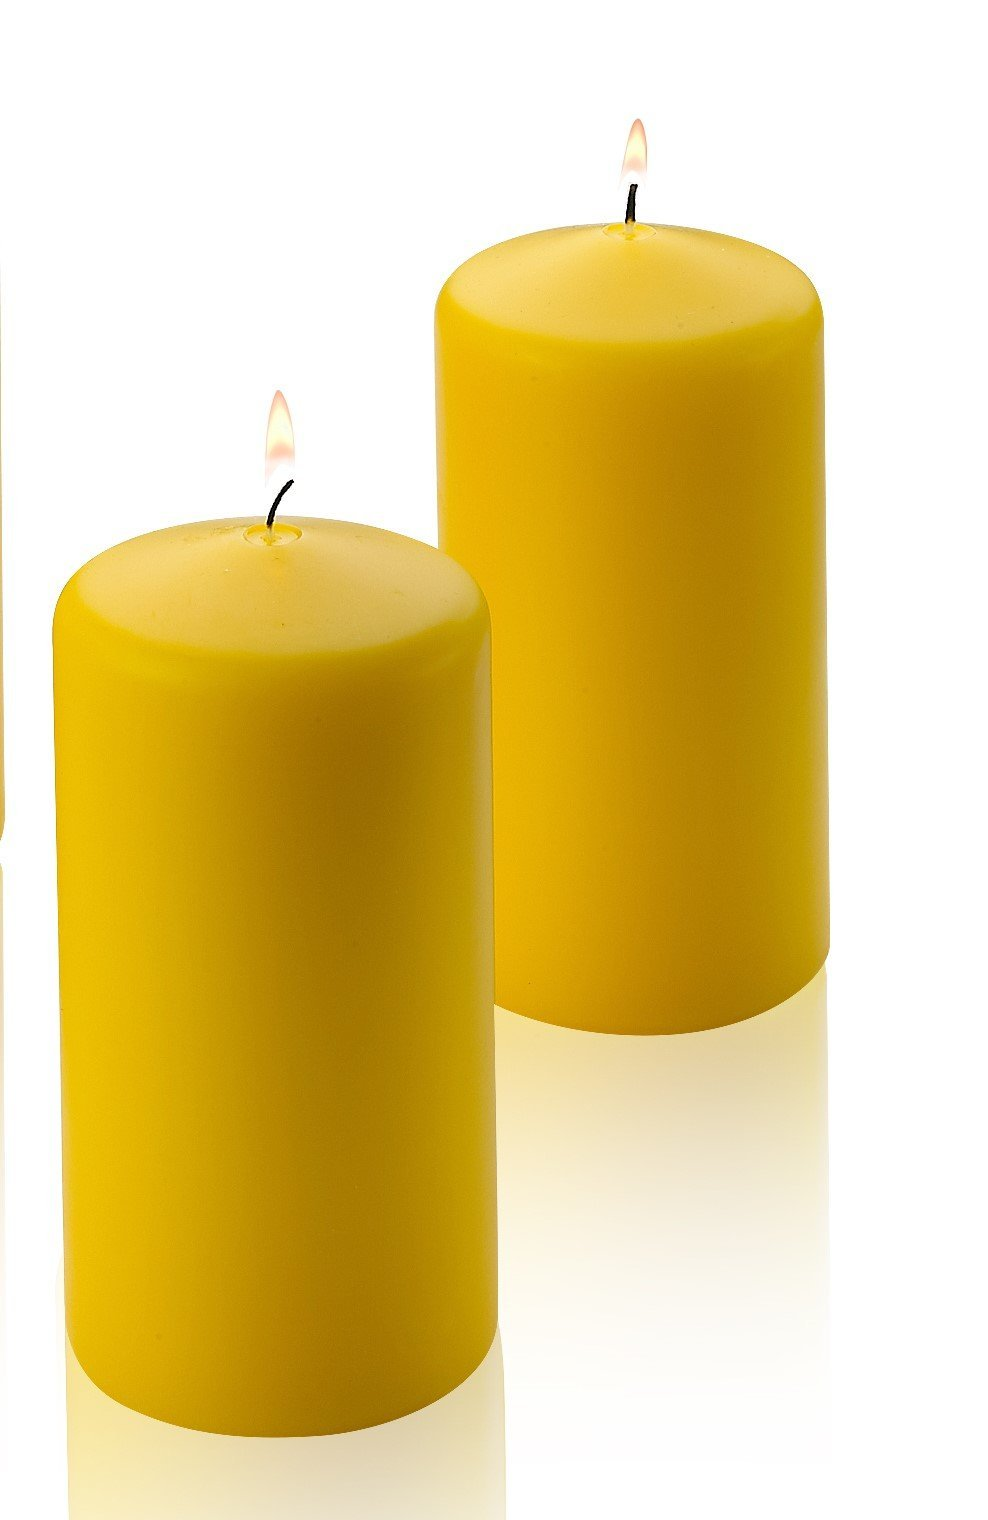 Light In the Dark Pillar Citronella Candle - Set of 2 Summer Scented Citronella Candles - 6 inch Tall, 3 inch Thick - Mosquito Bug Repellent for Indoor/Outdoor Use - Made in USA